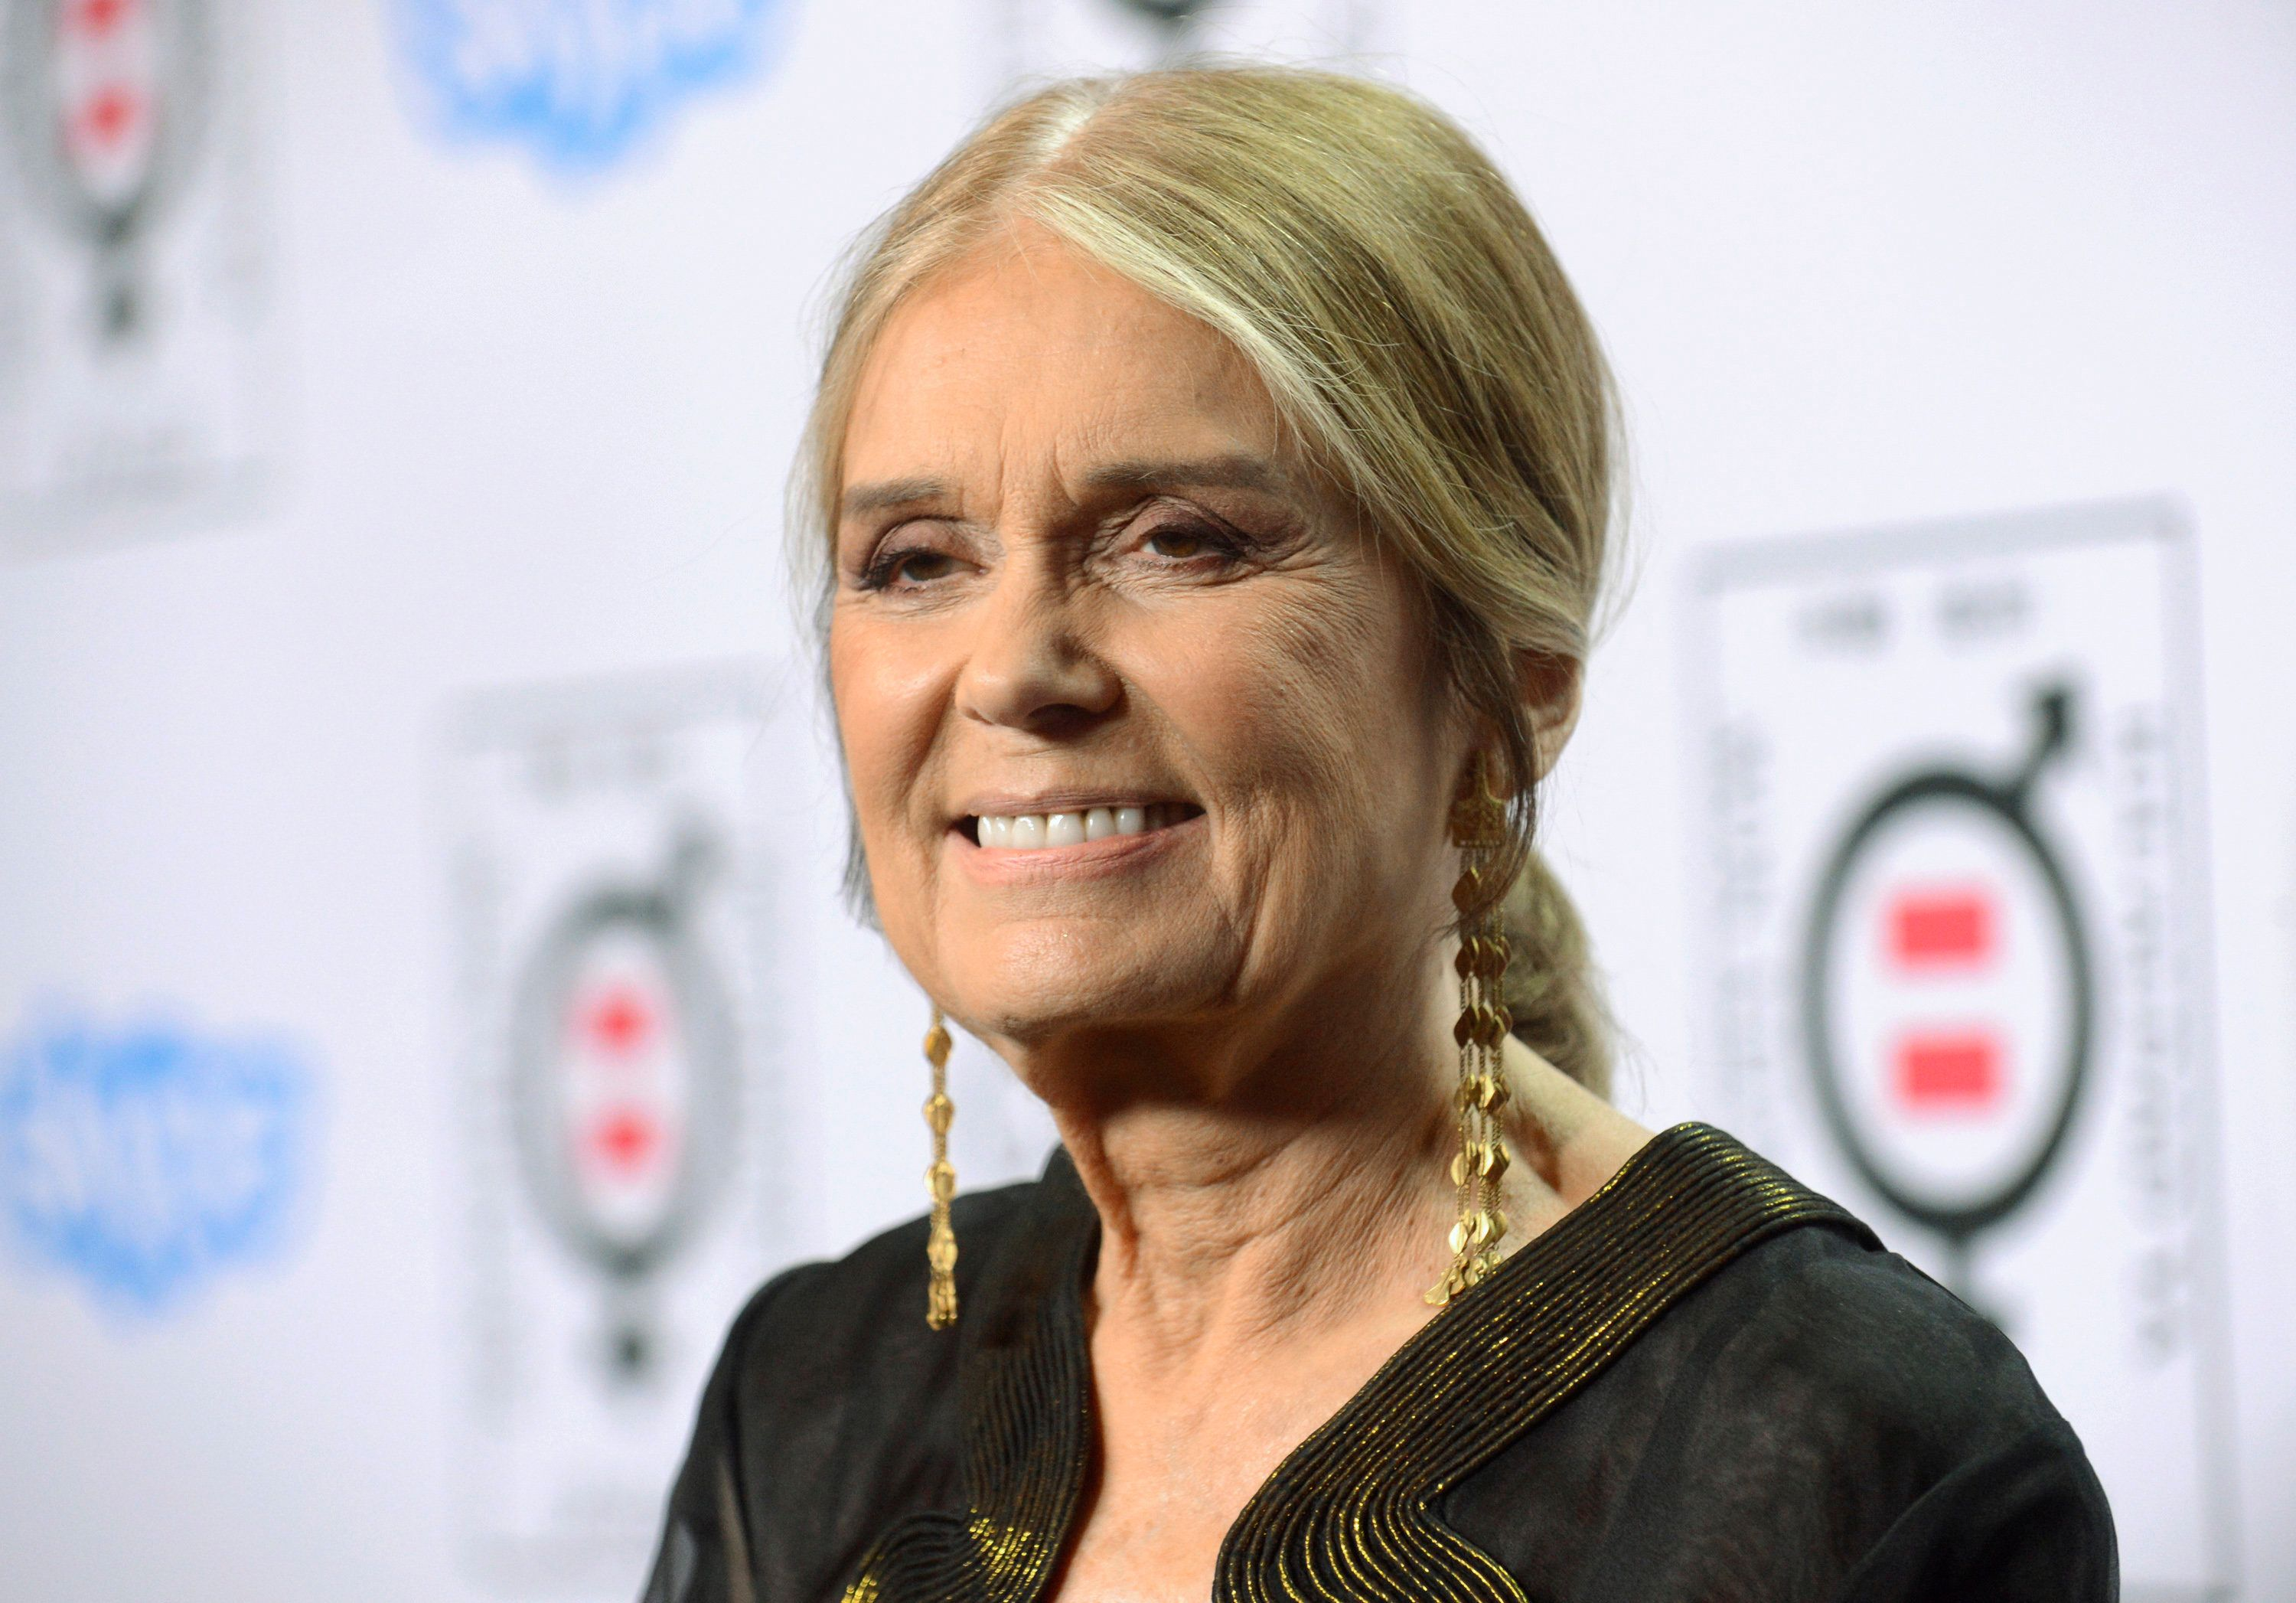 """Writer and activist Gloria Steinem attends the """"Make Equality Reality"""" event held in Beverly Hills, California November 3, 2014. REUTERS/Phil McCarten (UNITED STATES - Tags: ENTERTAINMENT HEADSHOT)"""